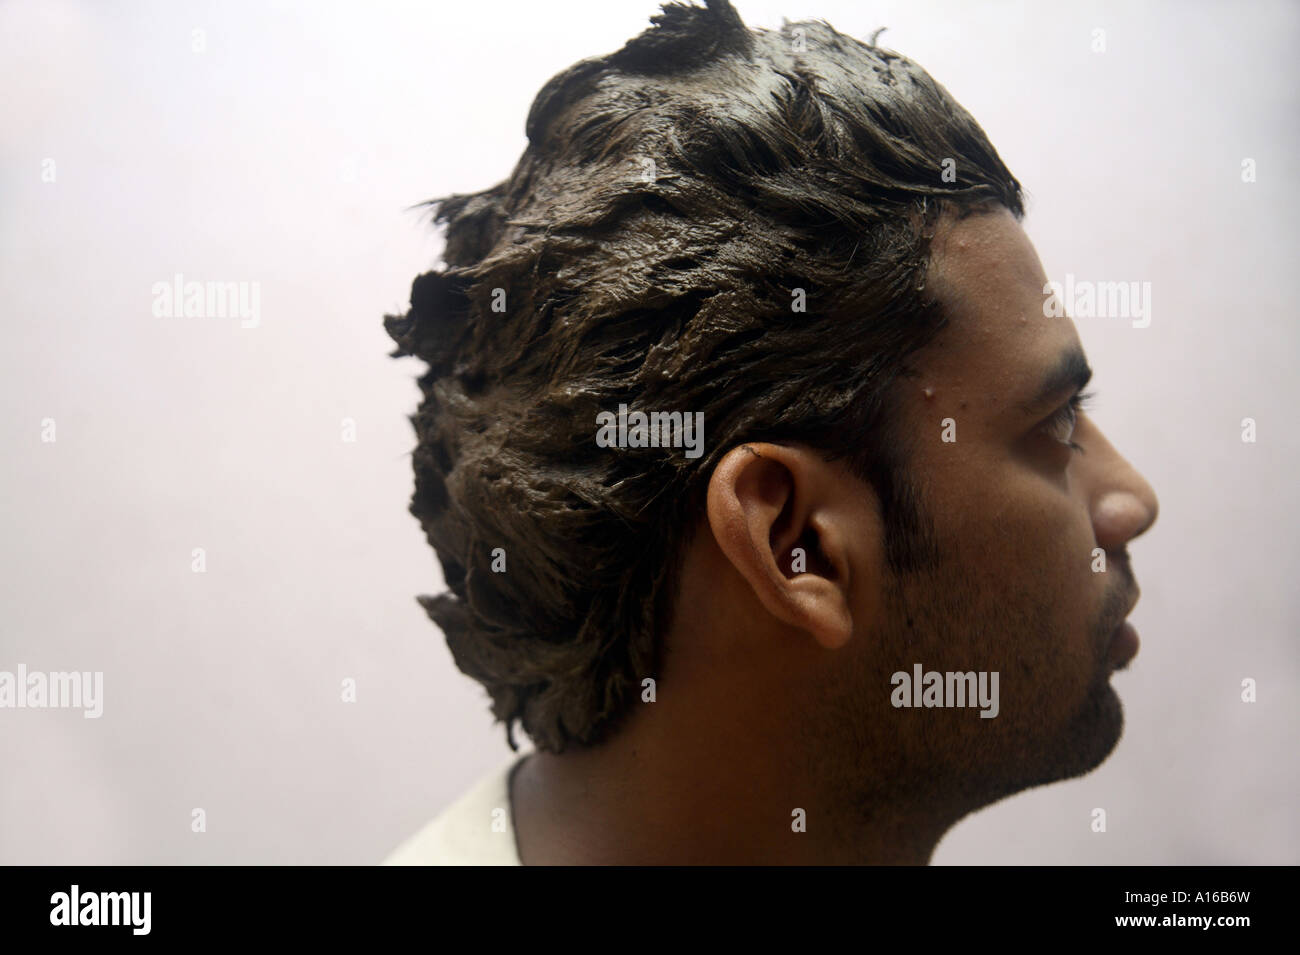 Indian Male With Hair Care Menhdi Heena Dye To Color Hair Stock